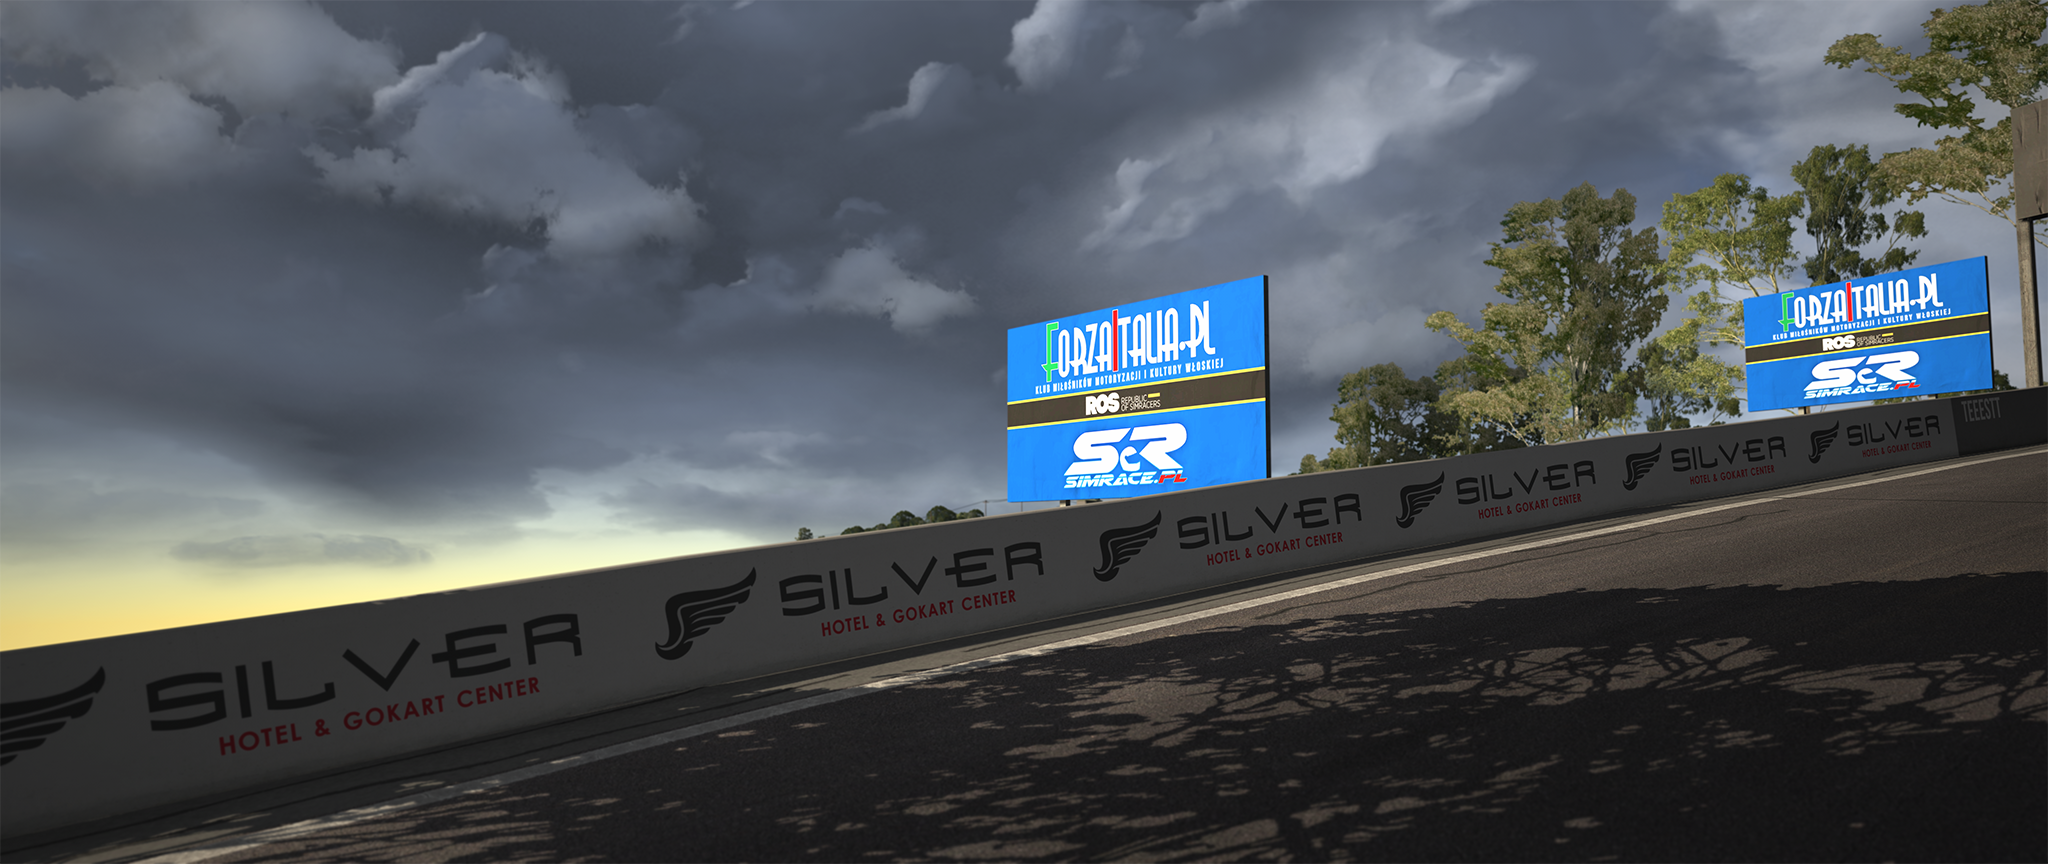 Final round of S3 and prizes from Silver Hotel & Gokart